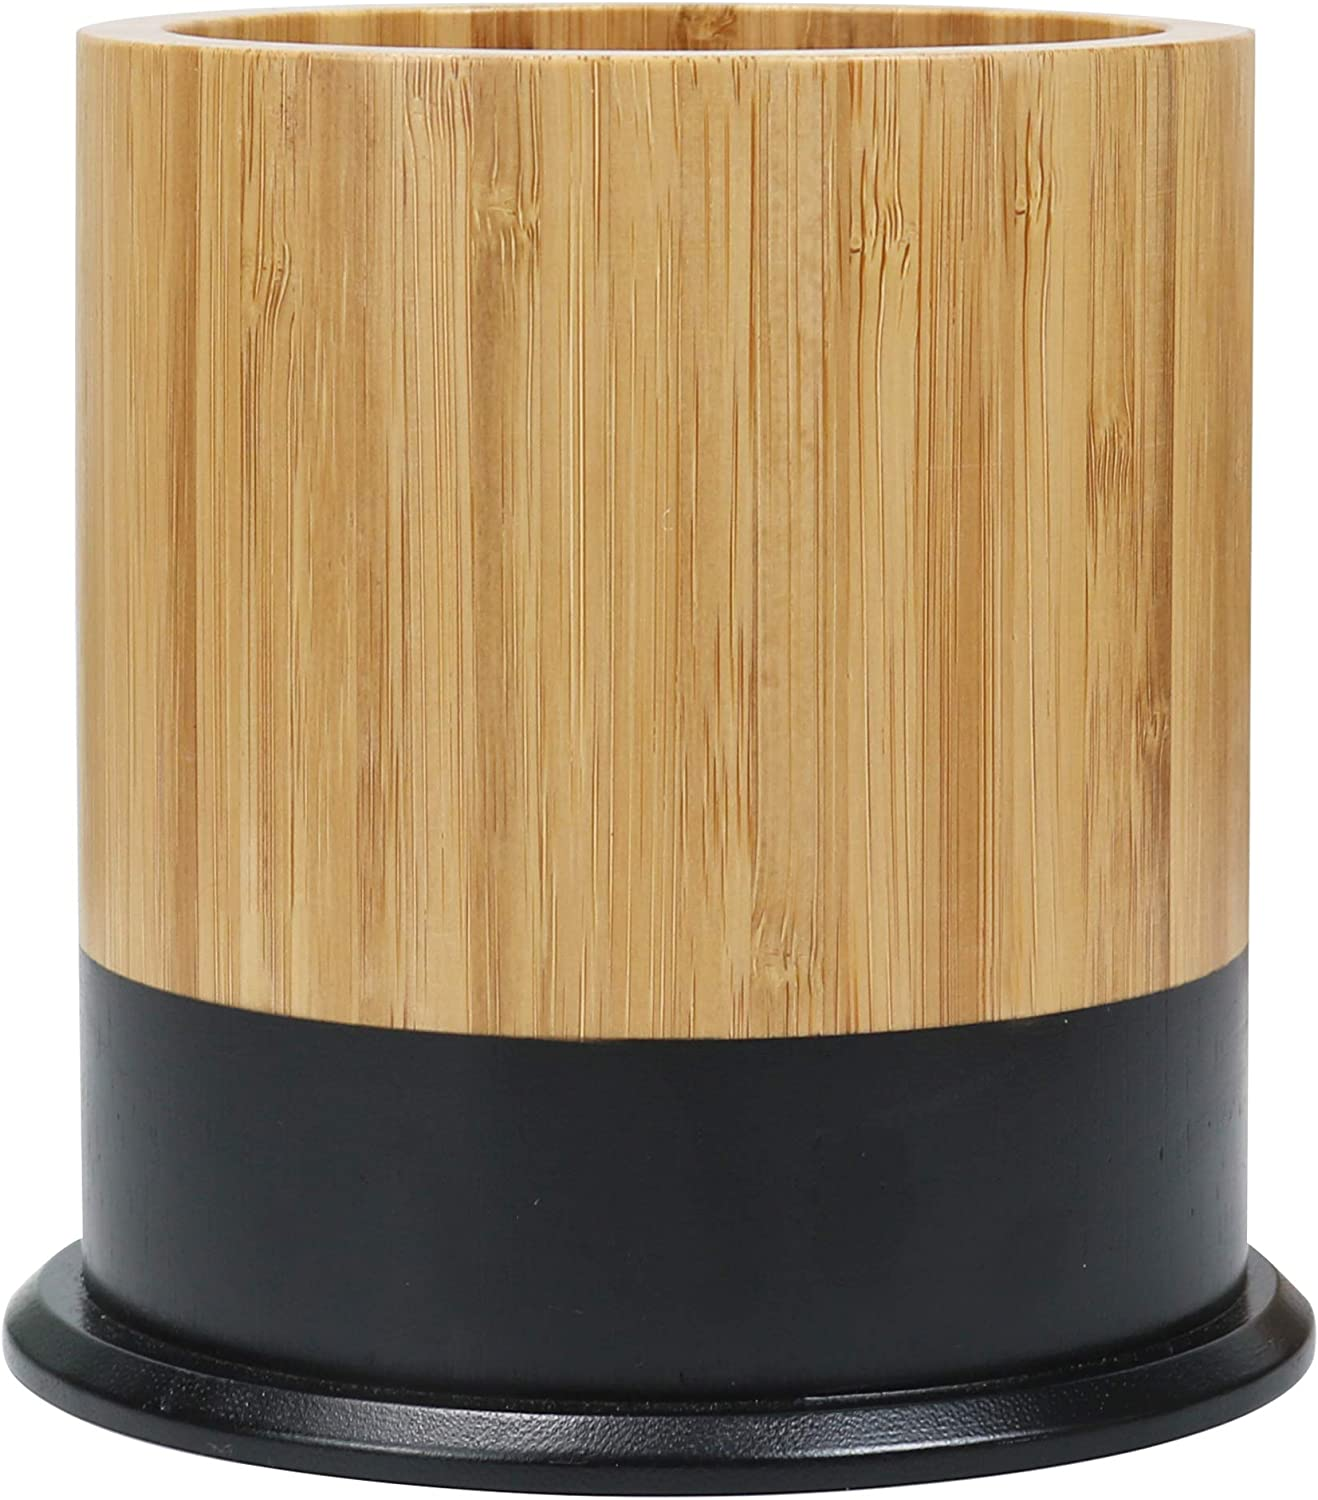 Kitchen Utensil Holder Large Max 68% OFF Cooking Max 79% OFF Cou for Crock Caddy